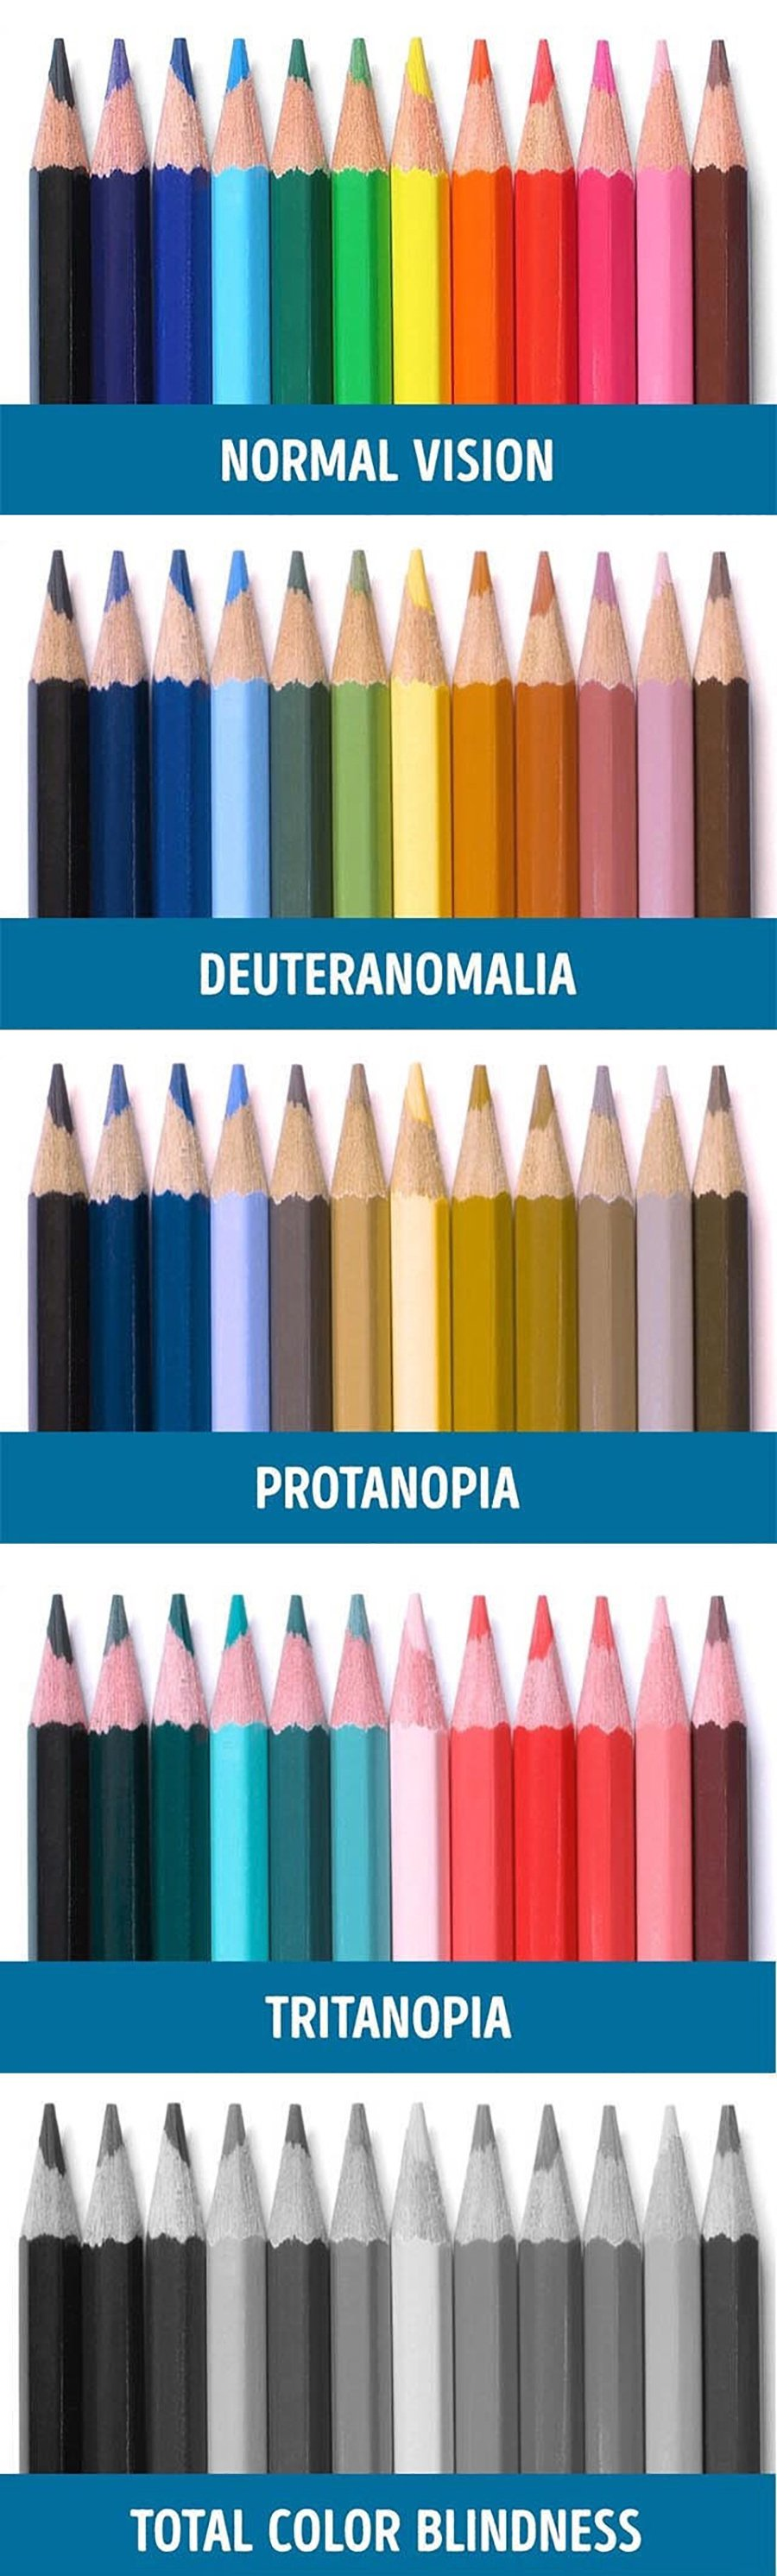 Color-blindness-demonstration